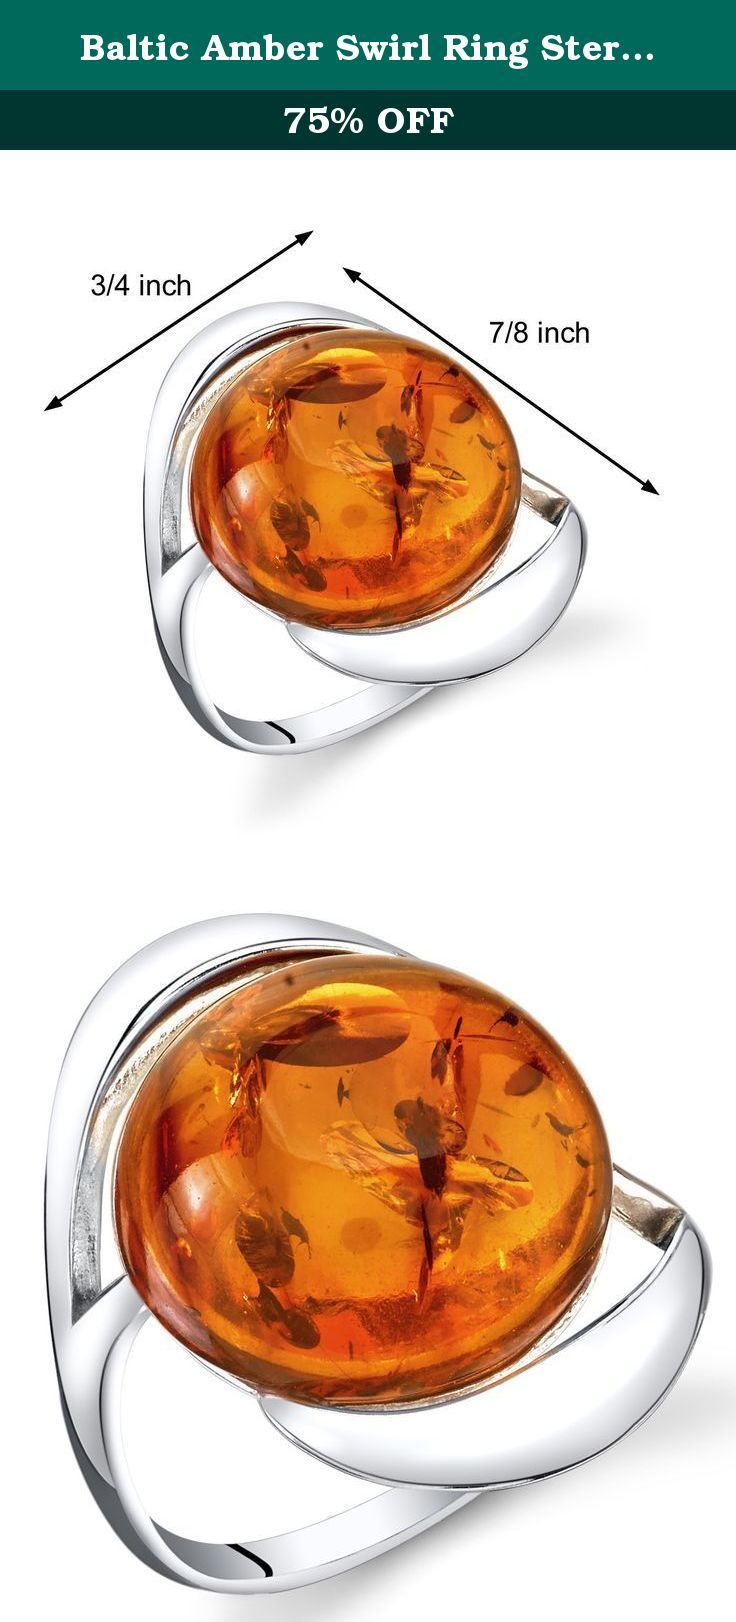 Baltic Amber Swirl Ring Sterling Silver Cognac Color Large Round Shape Size 6. Genuine Baltic Amber, Rich Cognac Color, large round shape. Ring: 2.6 grams pure 925 sterling silver, Available in sizes 5 to 9. Ring features exceptional design, craftsmanship and finishing. Perfect gift for Mothers Day, Birthdays, Valentines Day, Graduation, Christmas or just about any other occasion. Money Back Guarantee. Includes a Signature Gift Box. Style SR11310.